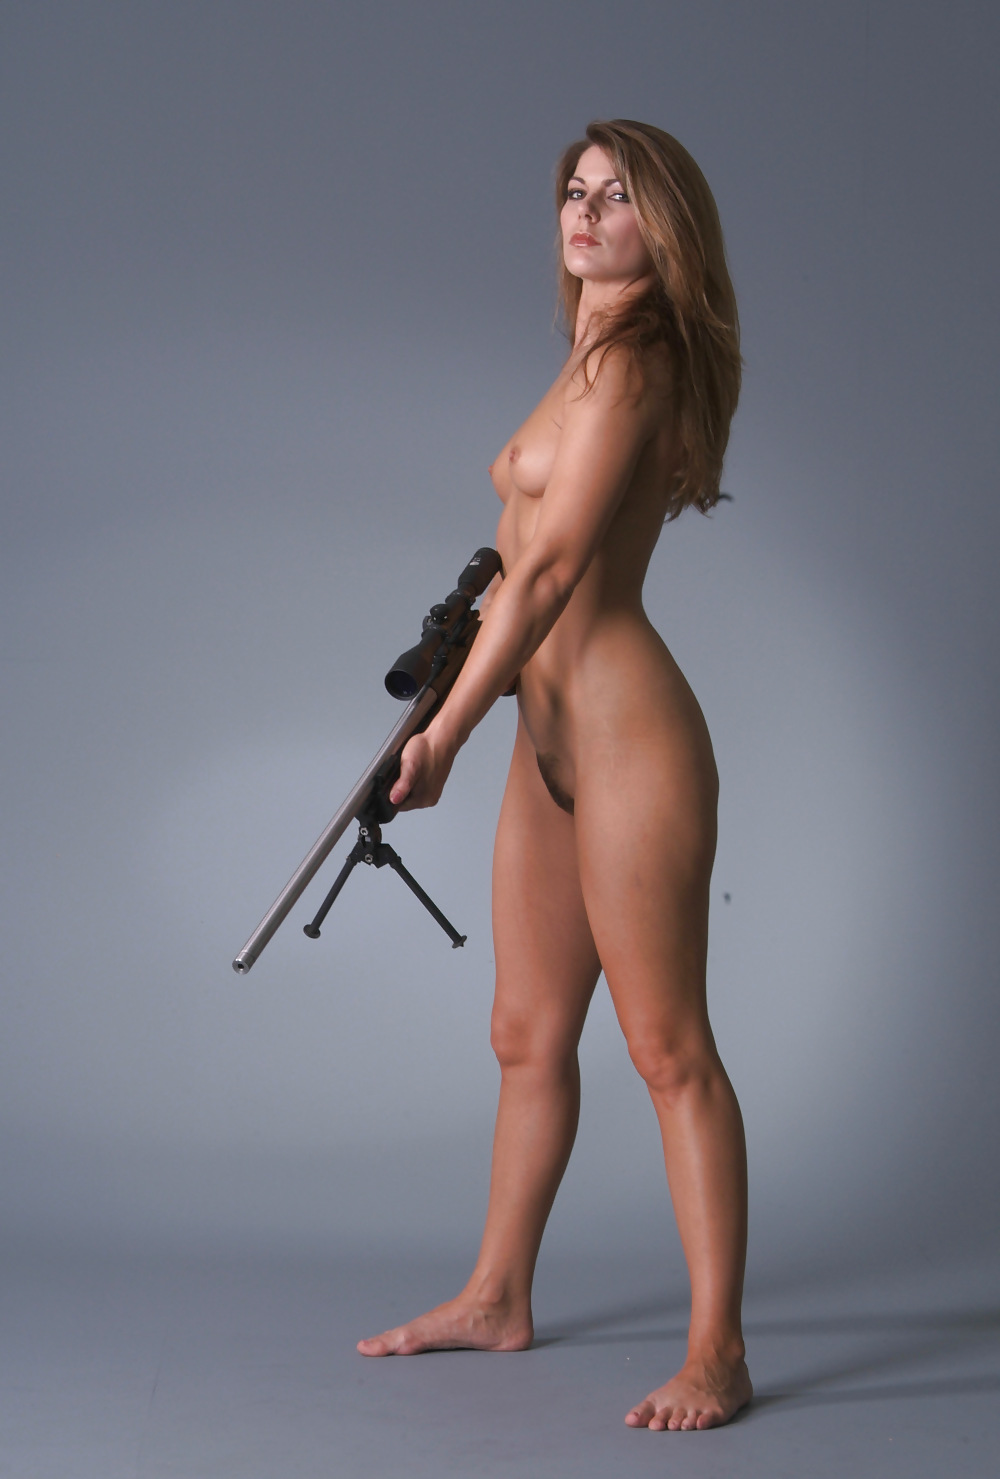 Consider, that nude girl with a gun can look